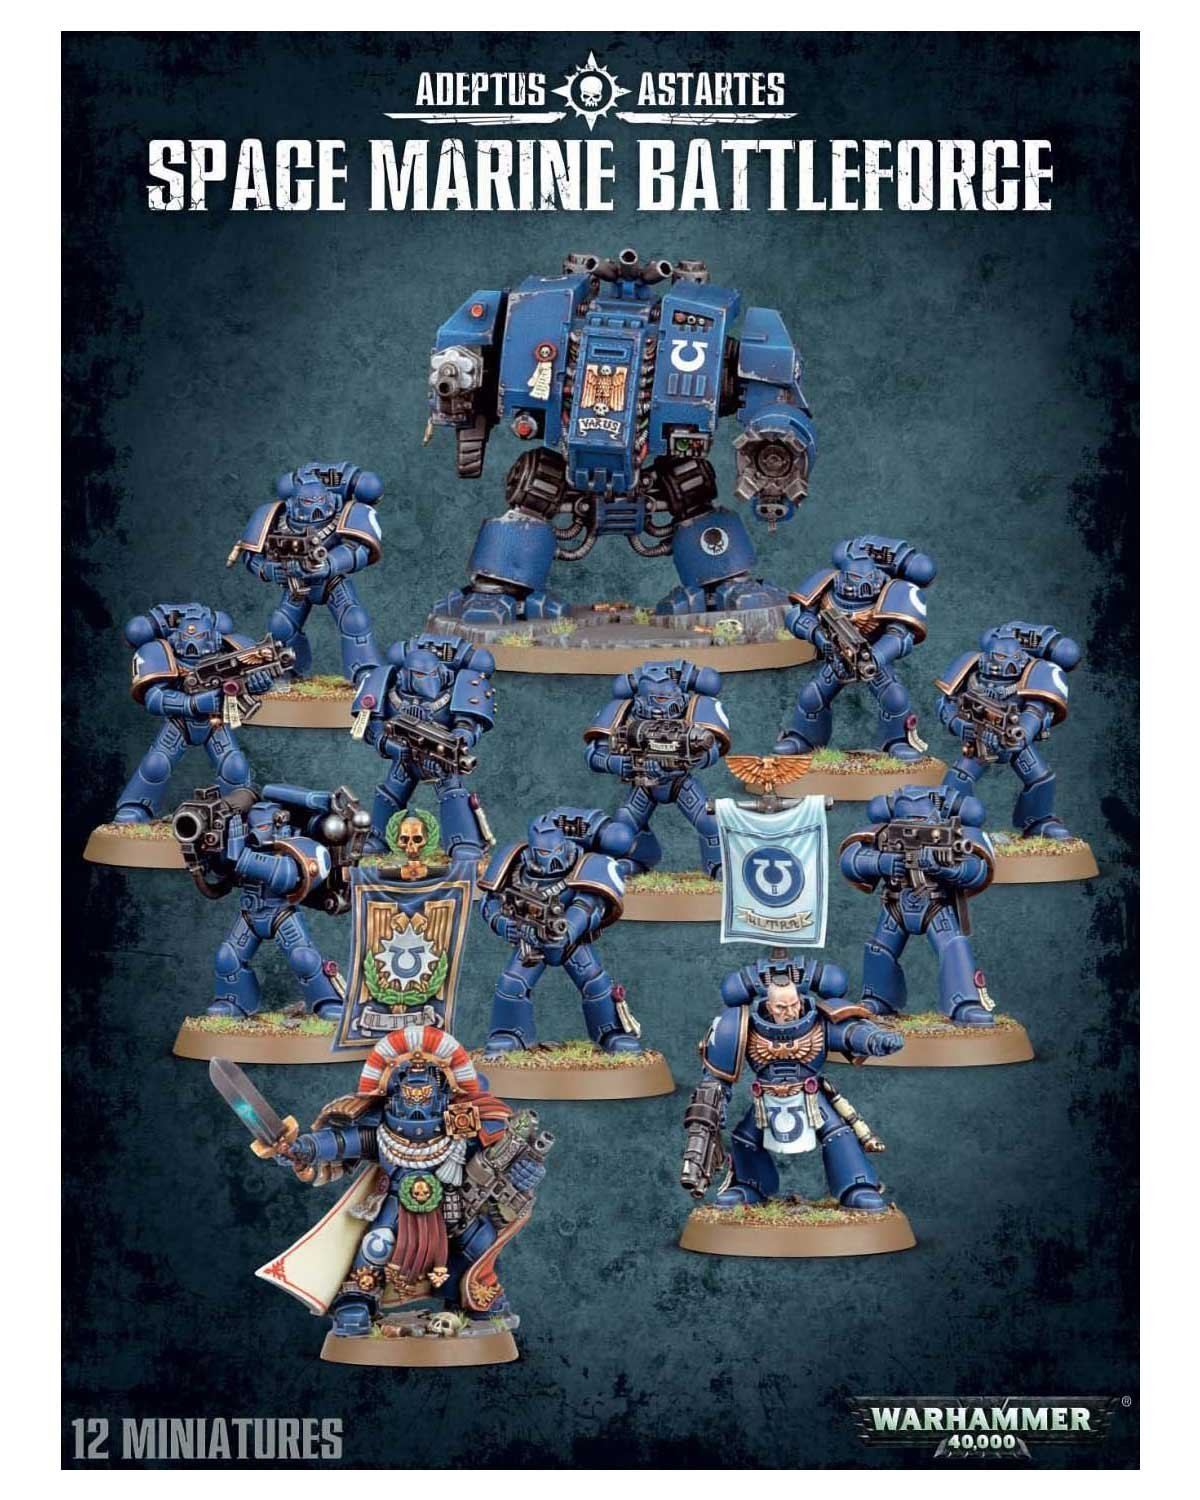 Space Marines Battleforce (2015) Warhammer 40k